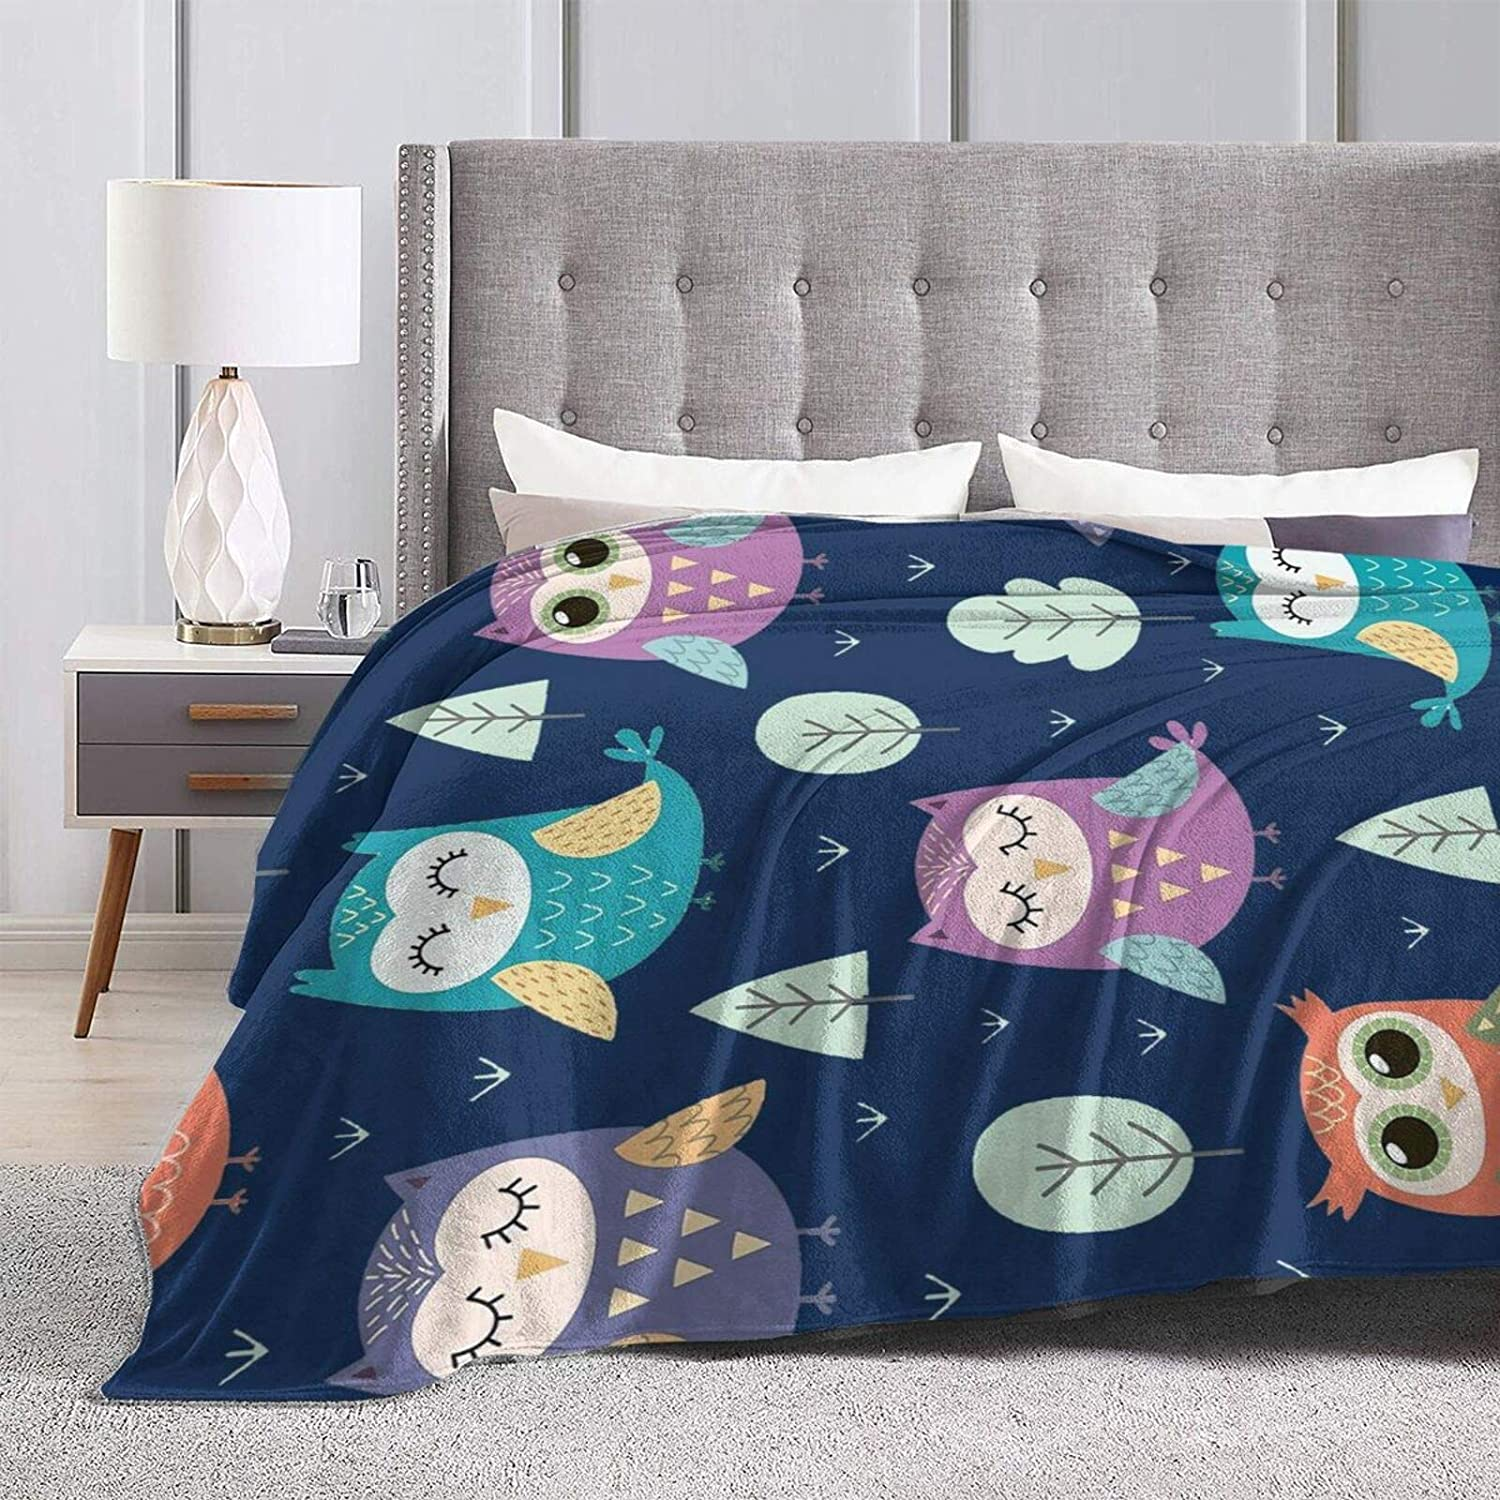 Lightweight Soft /& Fuzzy Flannel Plush Kids Decorative Throw Blankets for Couch Bed Sofa Travel 50X40 Colla Cute Owls Throw Blankets for Boys Girls Gift